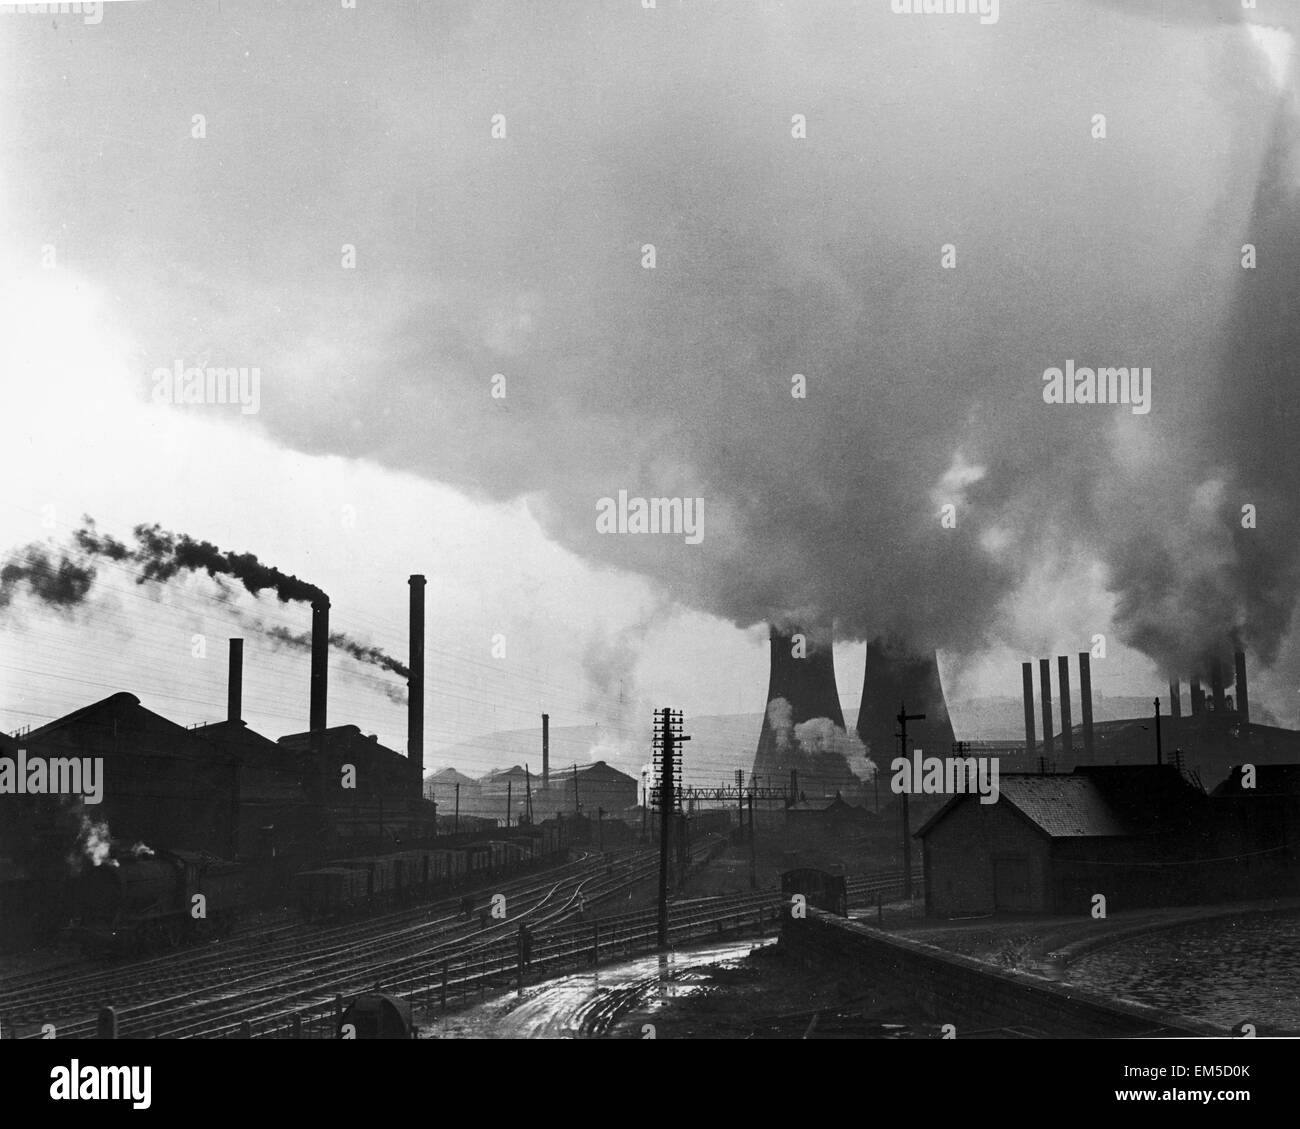 Cooling towers and smoking chimneys pollute the air at a Sheffield industrial site Circa 1947 - Stock Image